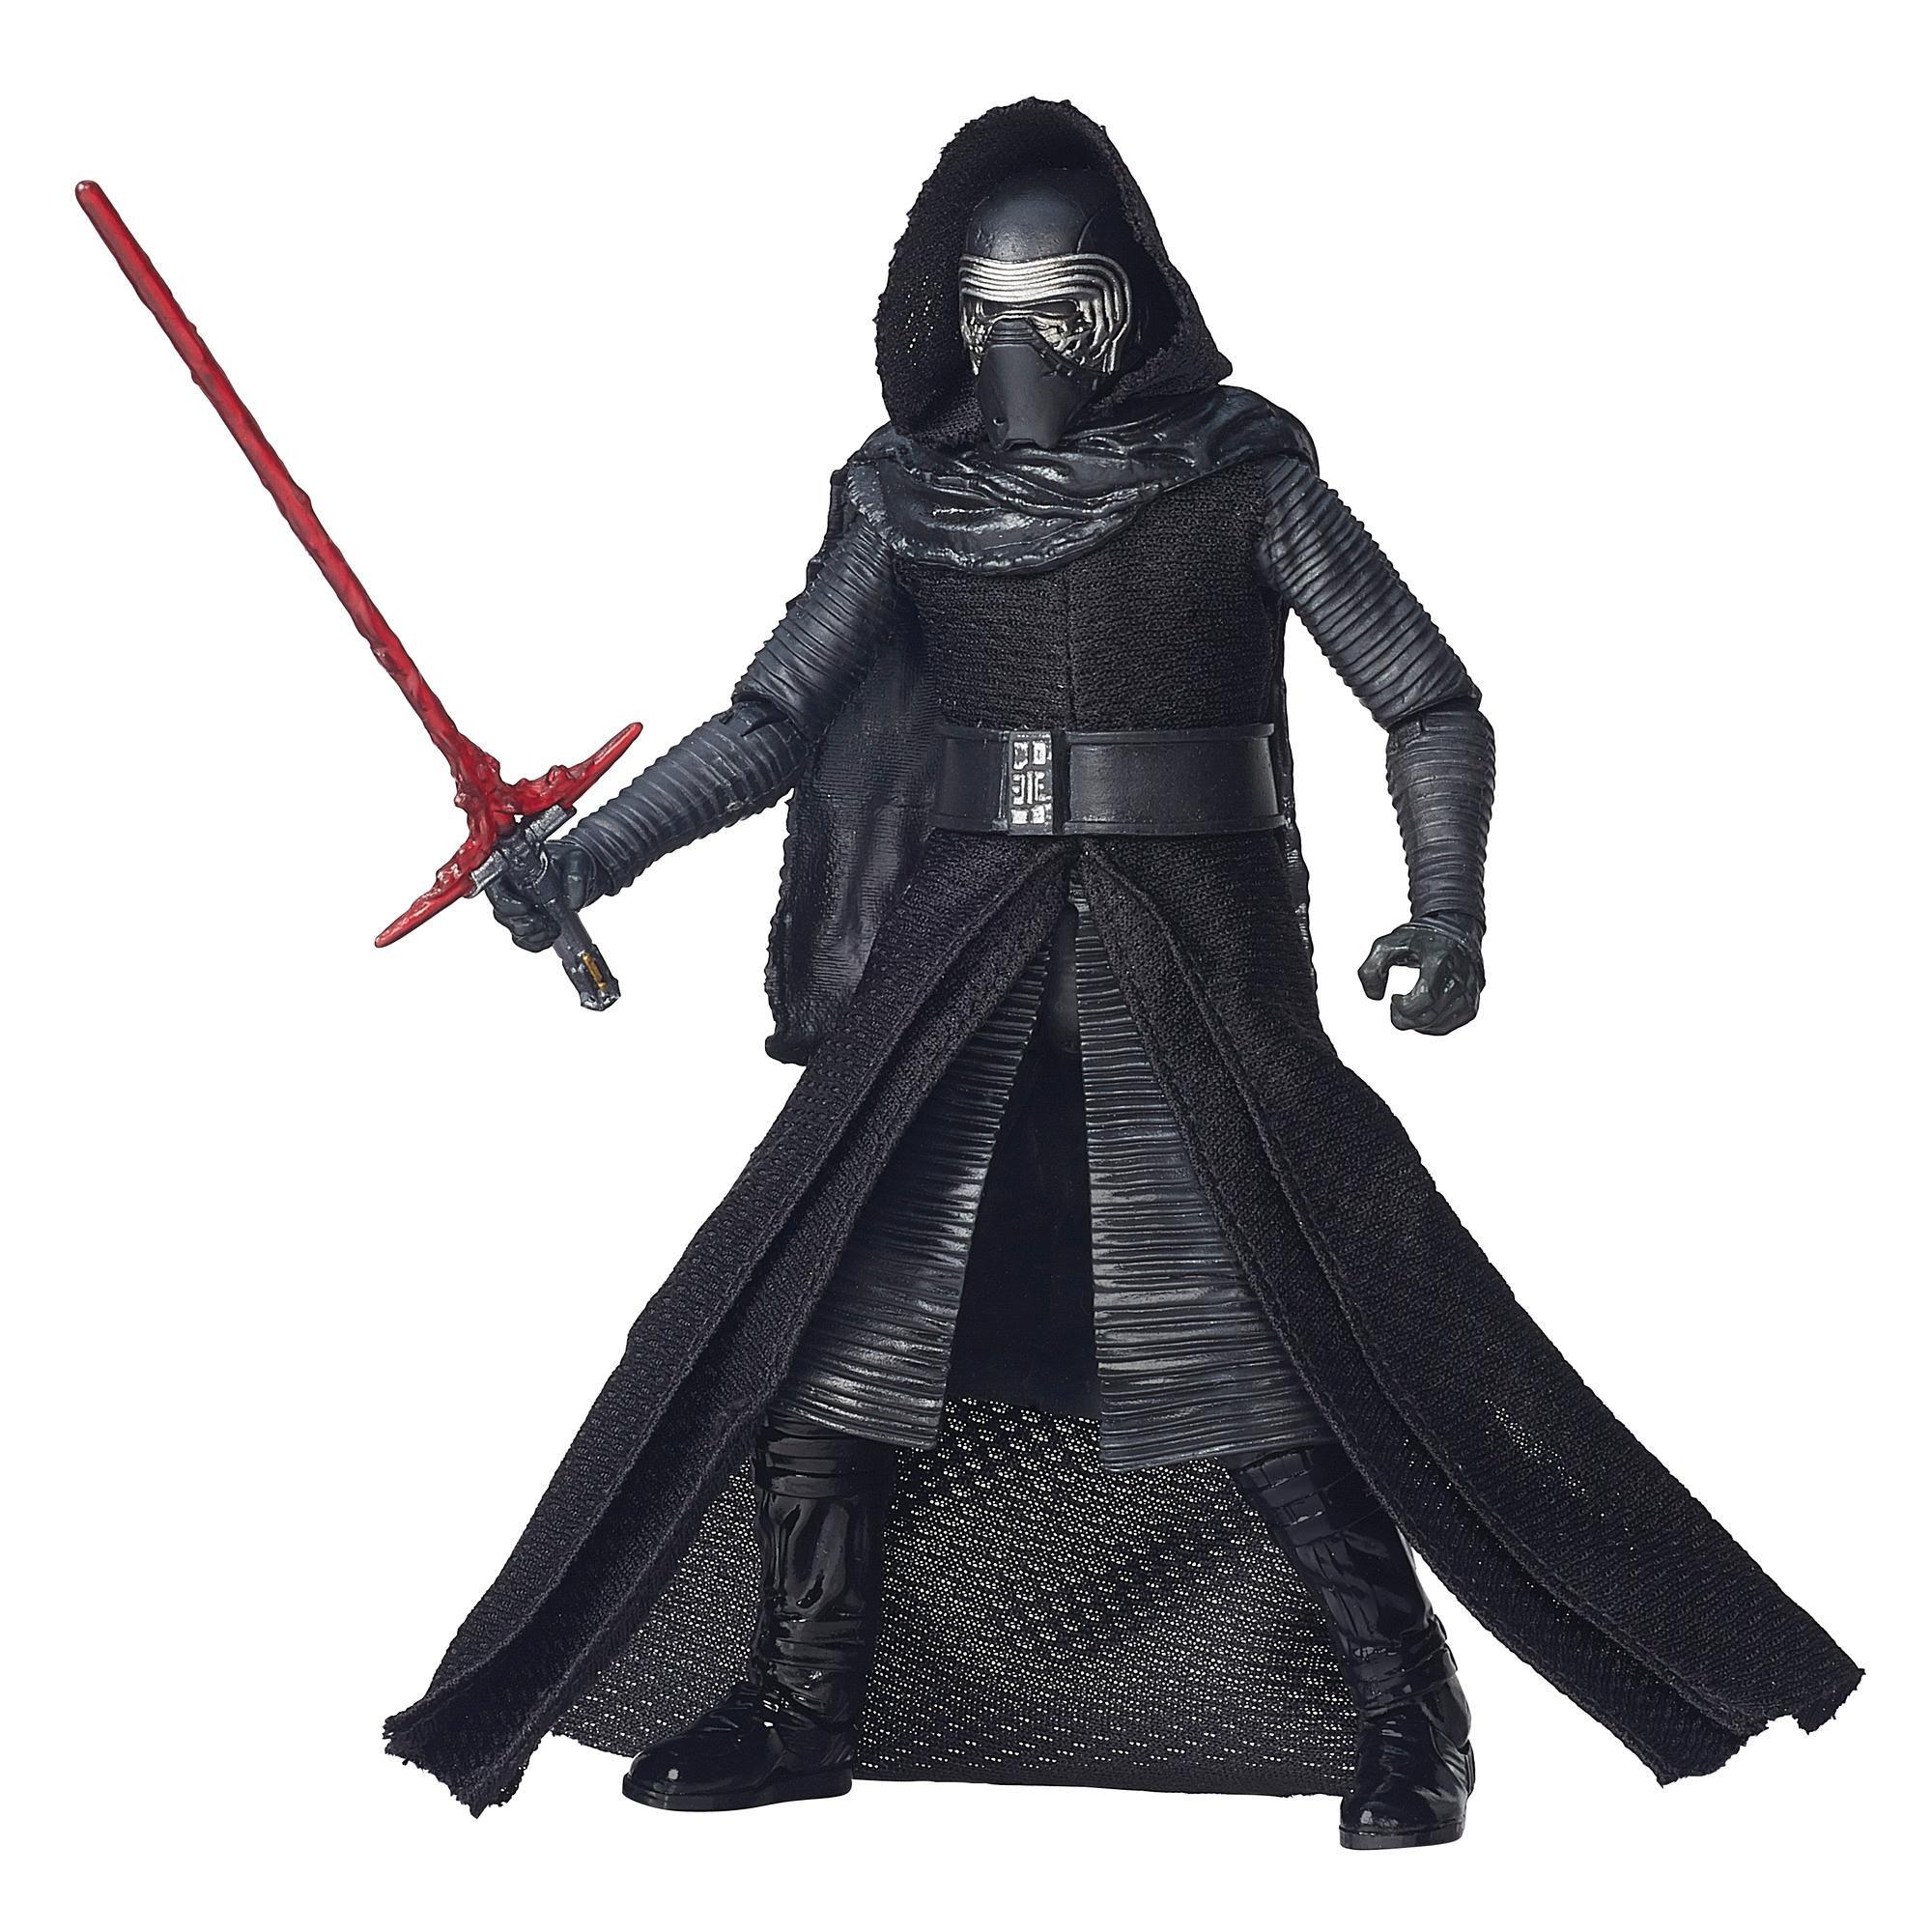 Star Wars The Black Series Kylo Ren de 15 cm (6 in)